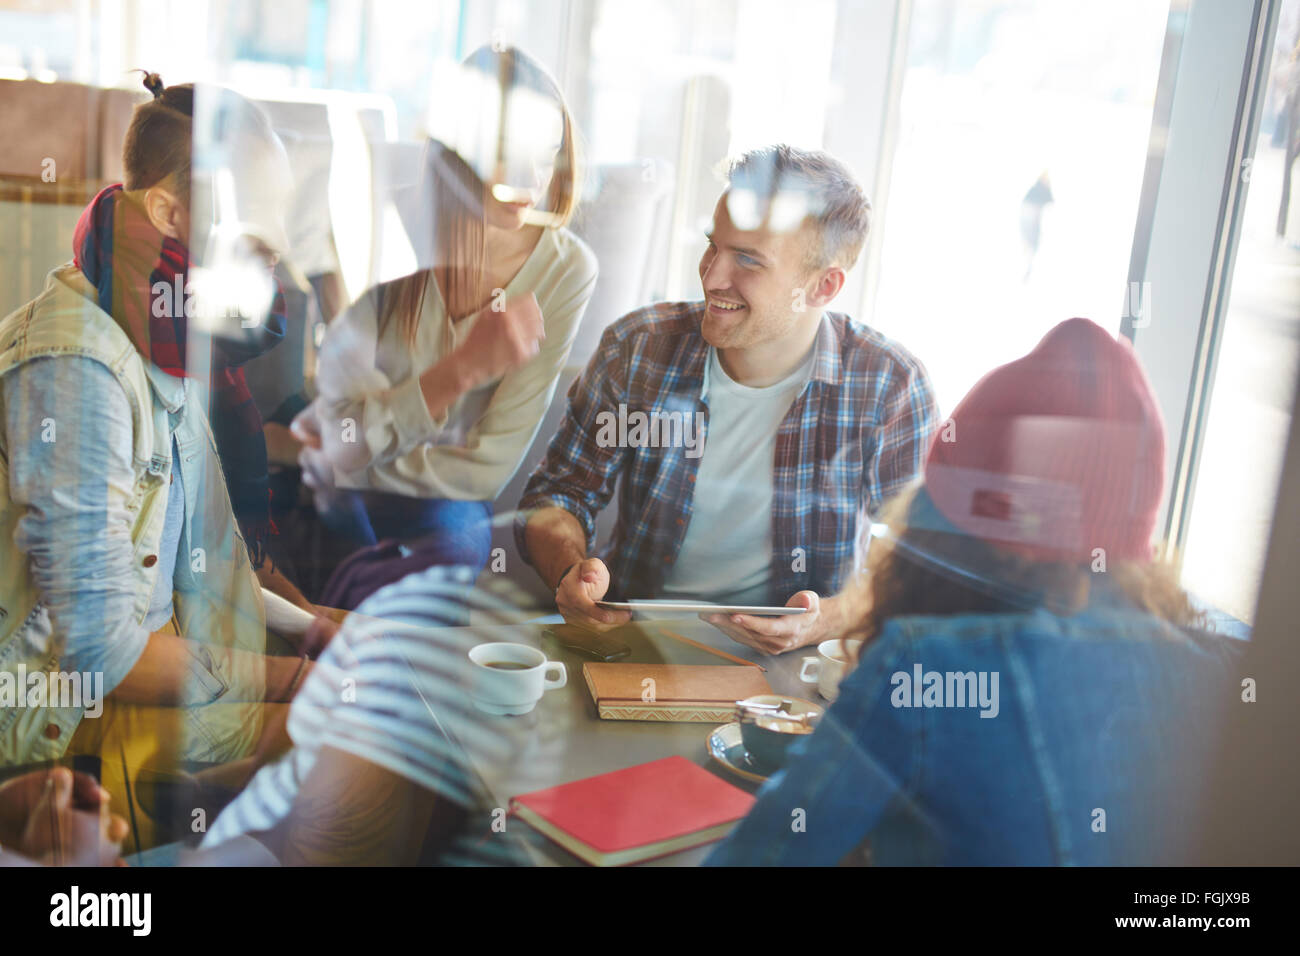 Friendly adolescents passer du temps libre en cafe Photo Stock